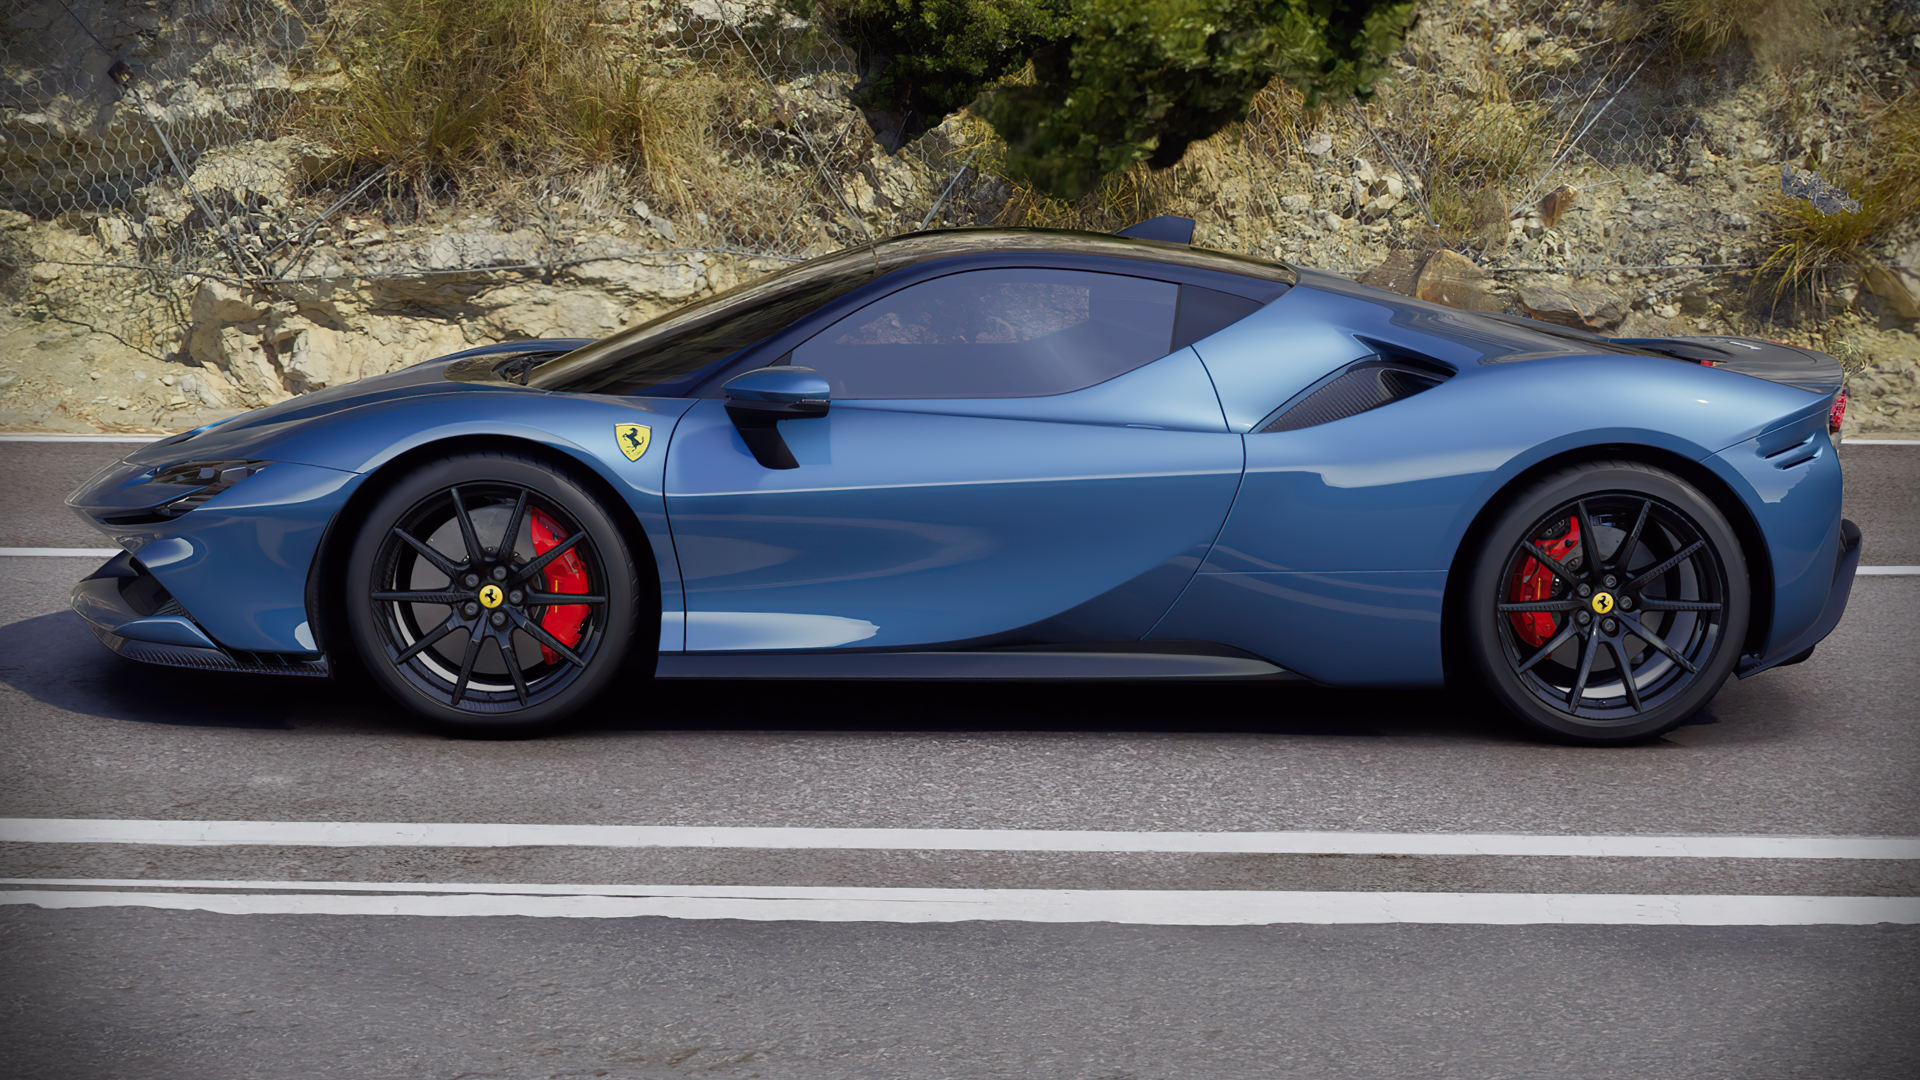 Ferrari 2020 Blue Car Hd Wallpaper